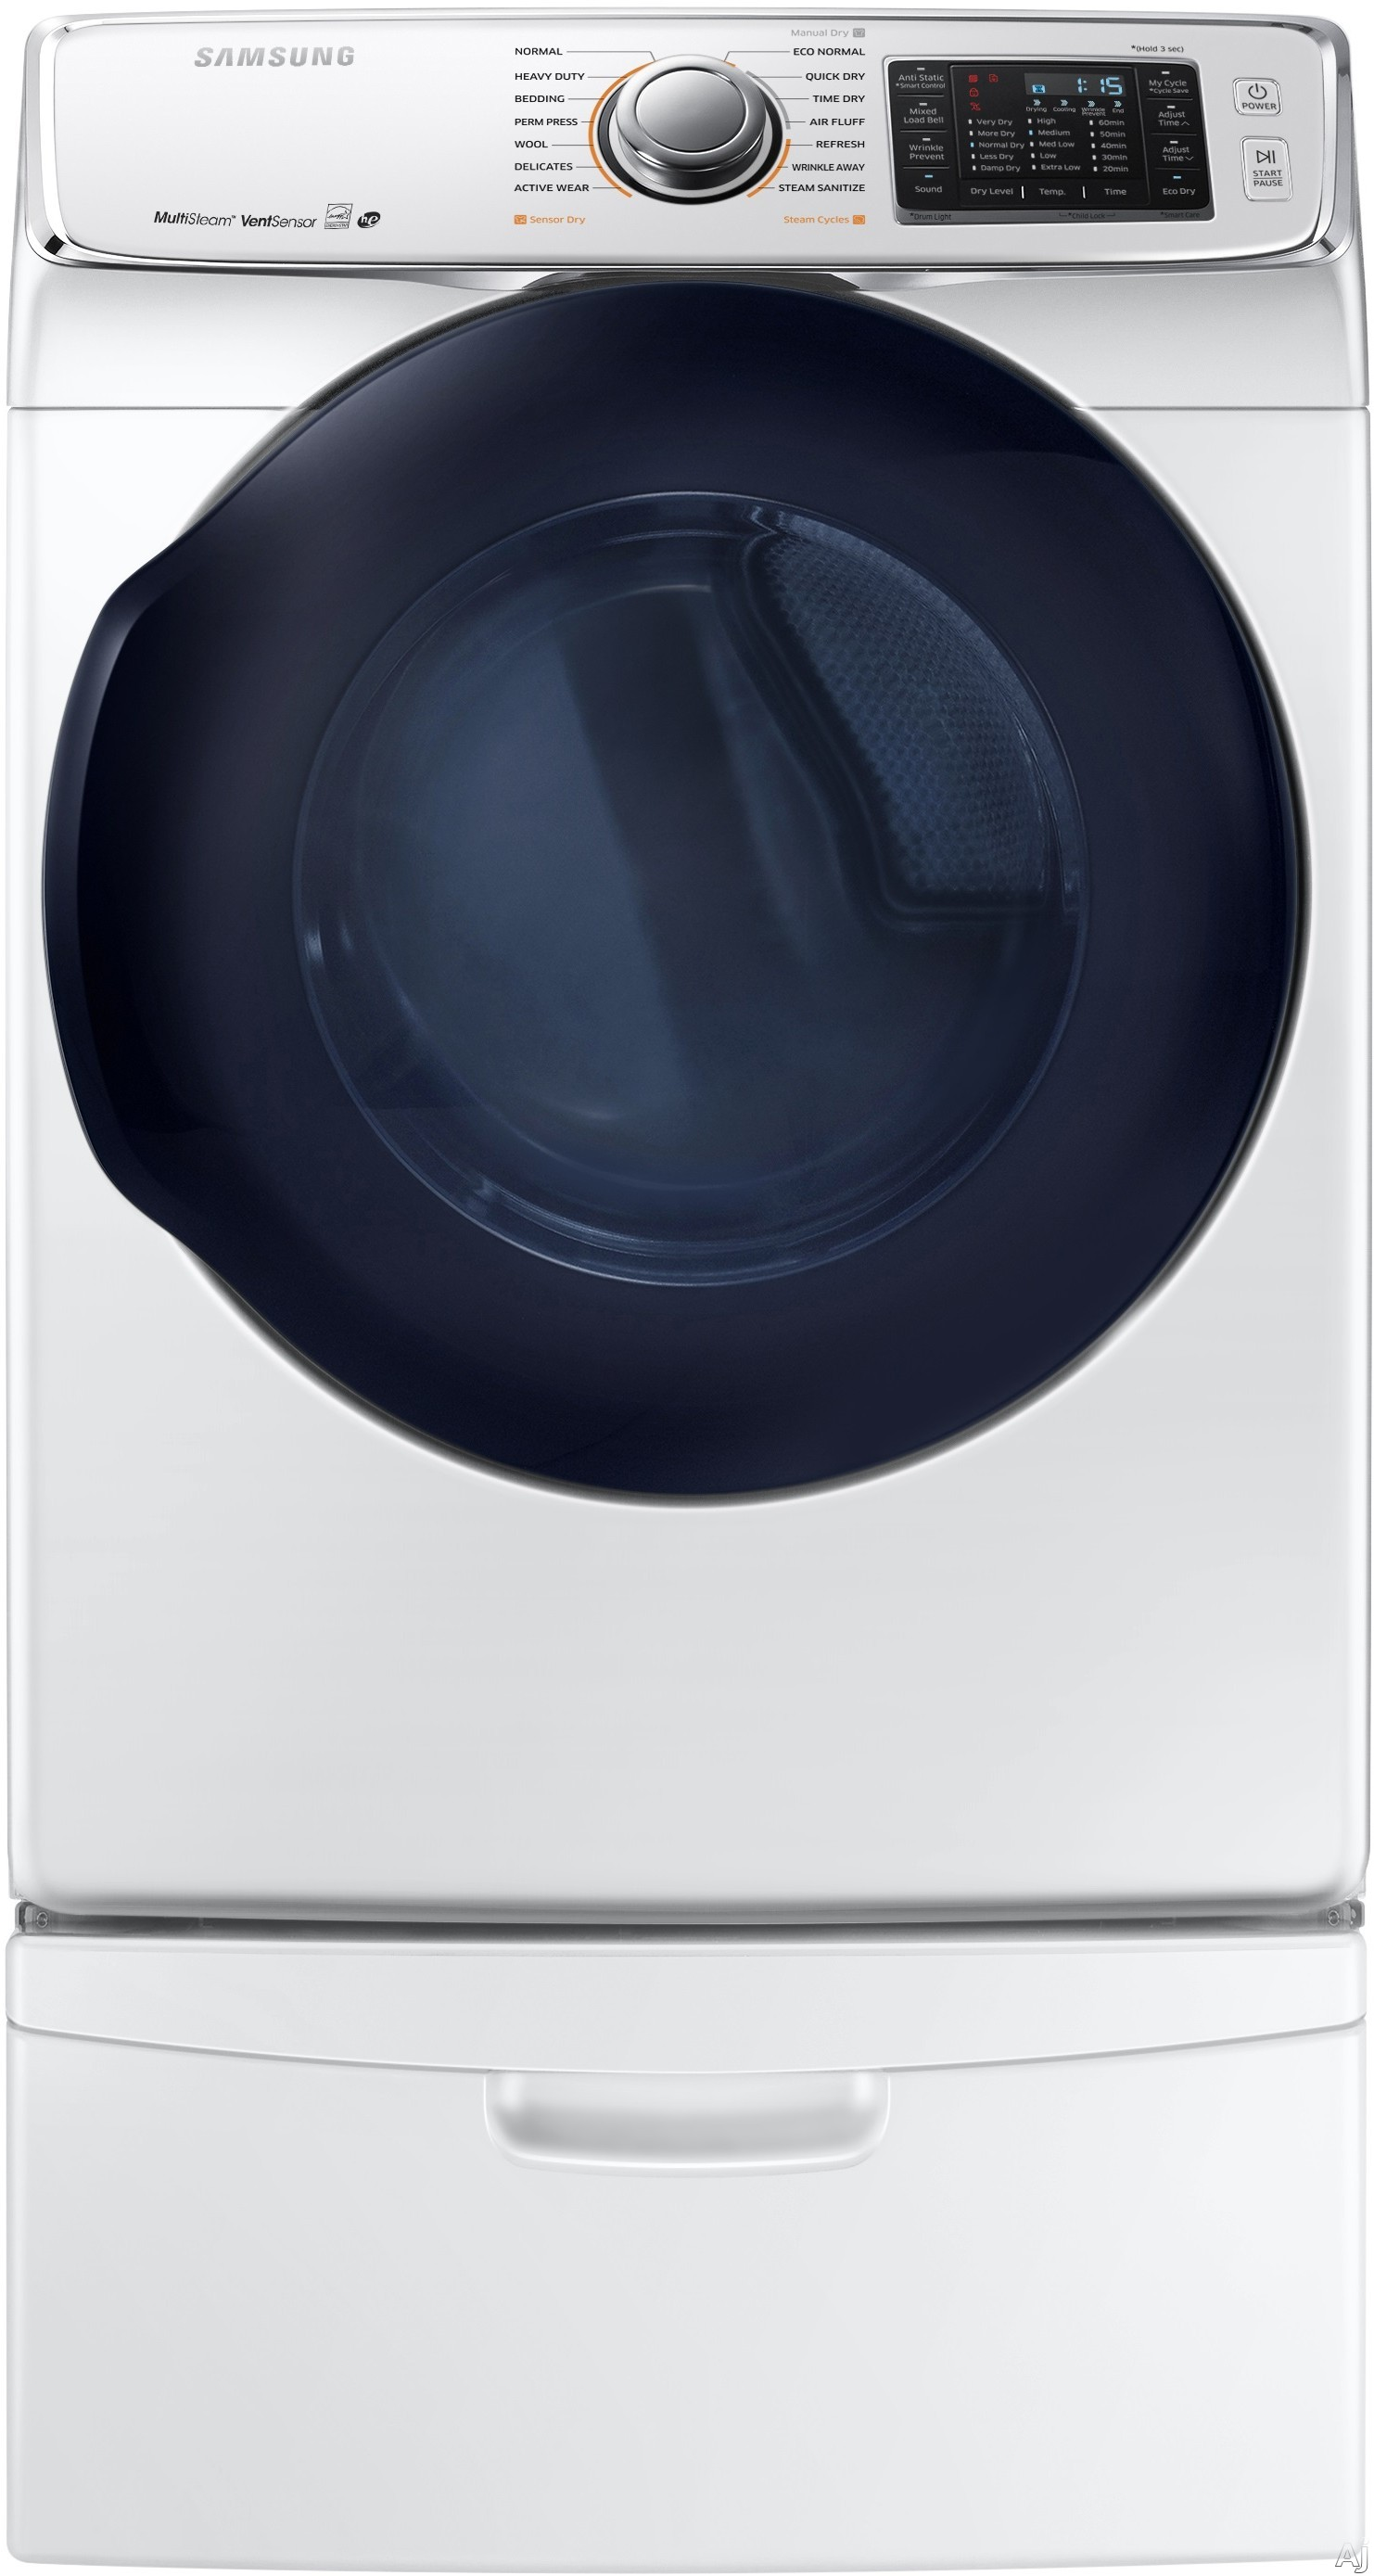 Samsung DV45K6500EW 27 Inch 7.5 cu. ft. Electric Dryer with Multi Steam Smart Care Eco Dry 7.5 cu. ft. Capacity 14 Dry Cycles 11 Dry Options 5 Temperature Selections Vent Sensor and ENERGY STAR Certif